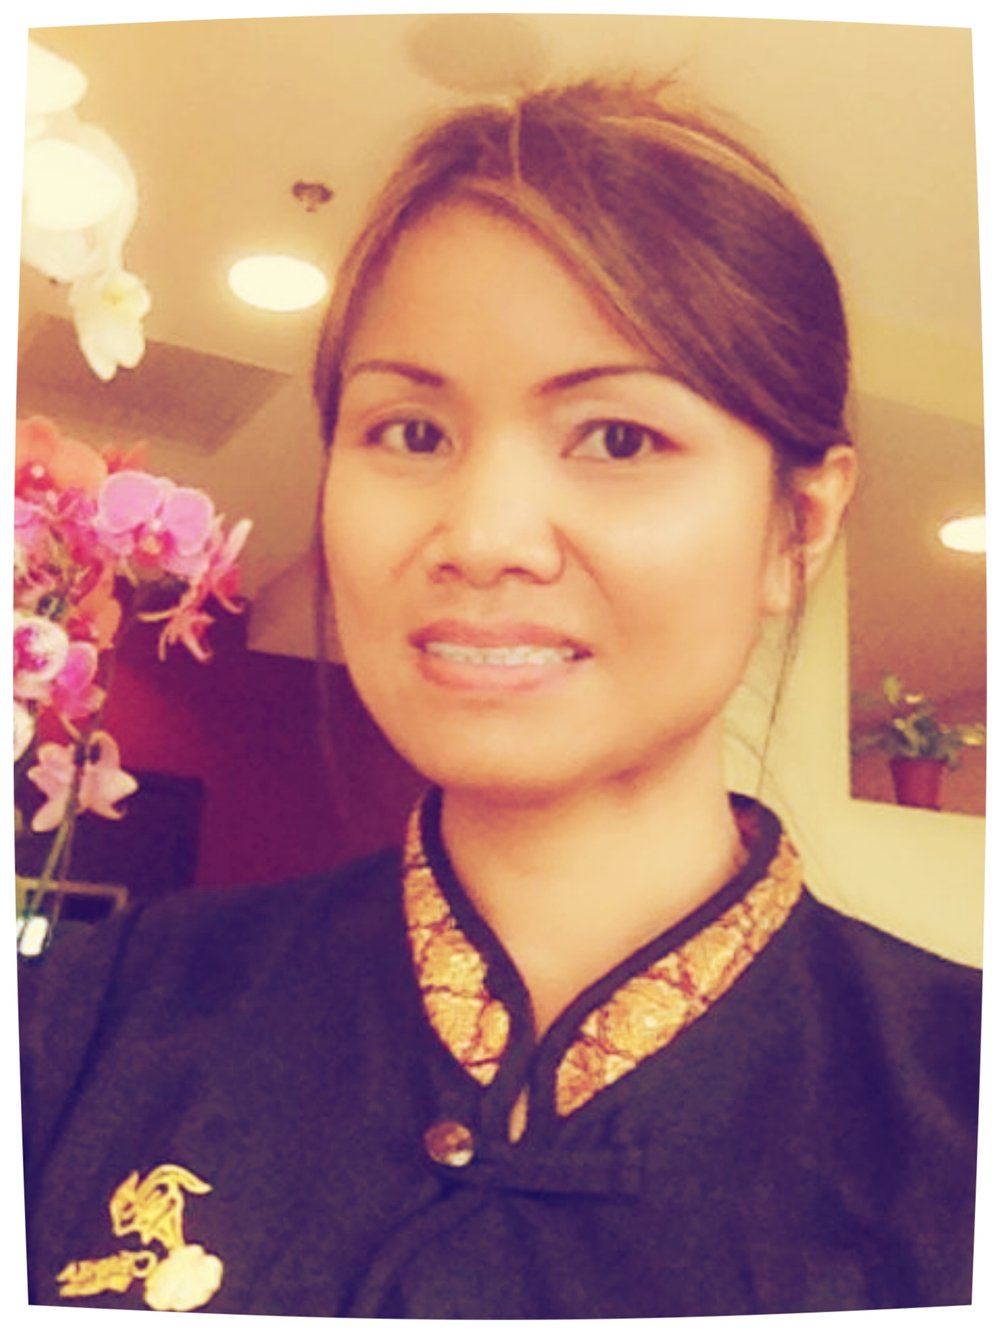 THIERLamai Jumpaburi Coyle graduated from Shivagakomarpaj School of Thai Massage, Old Medicine Hospital, Chiang Mai, Thailand with certification in Traditional Thai Massage in 2010. Lamai is a Licensed and Certified Massage Therapist in state of Virginia since 2011.